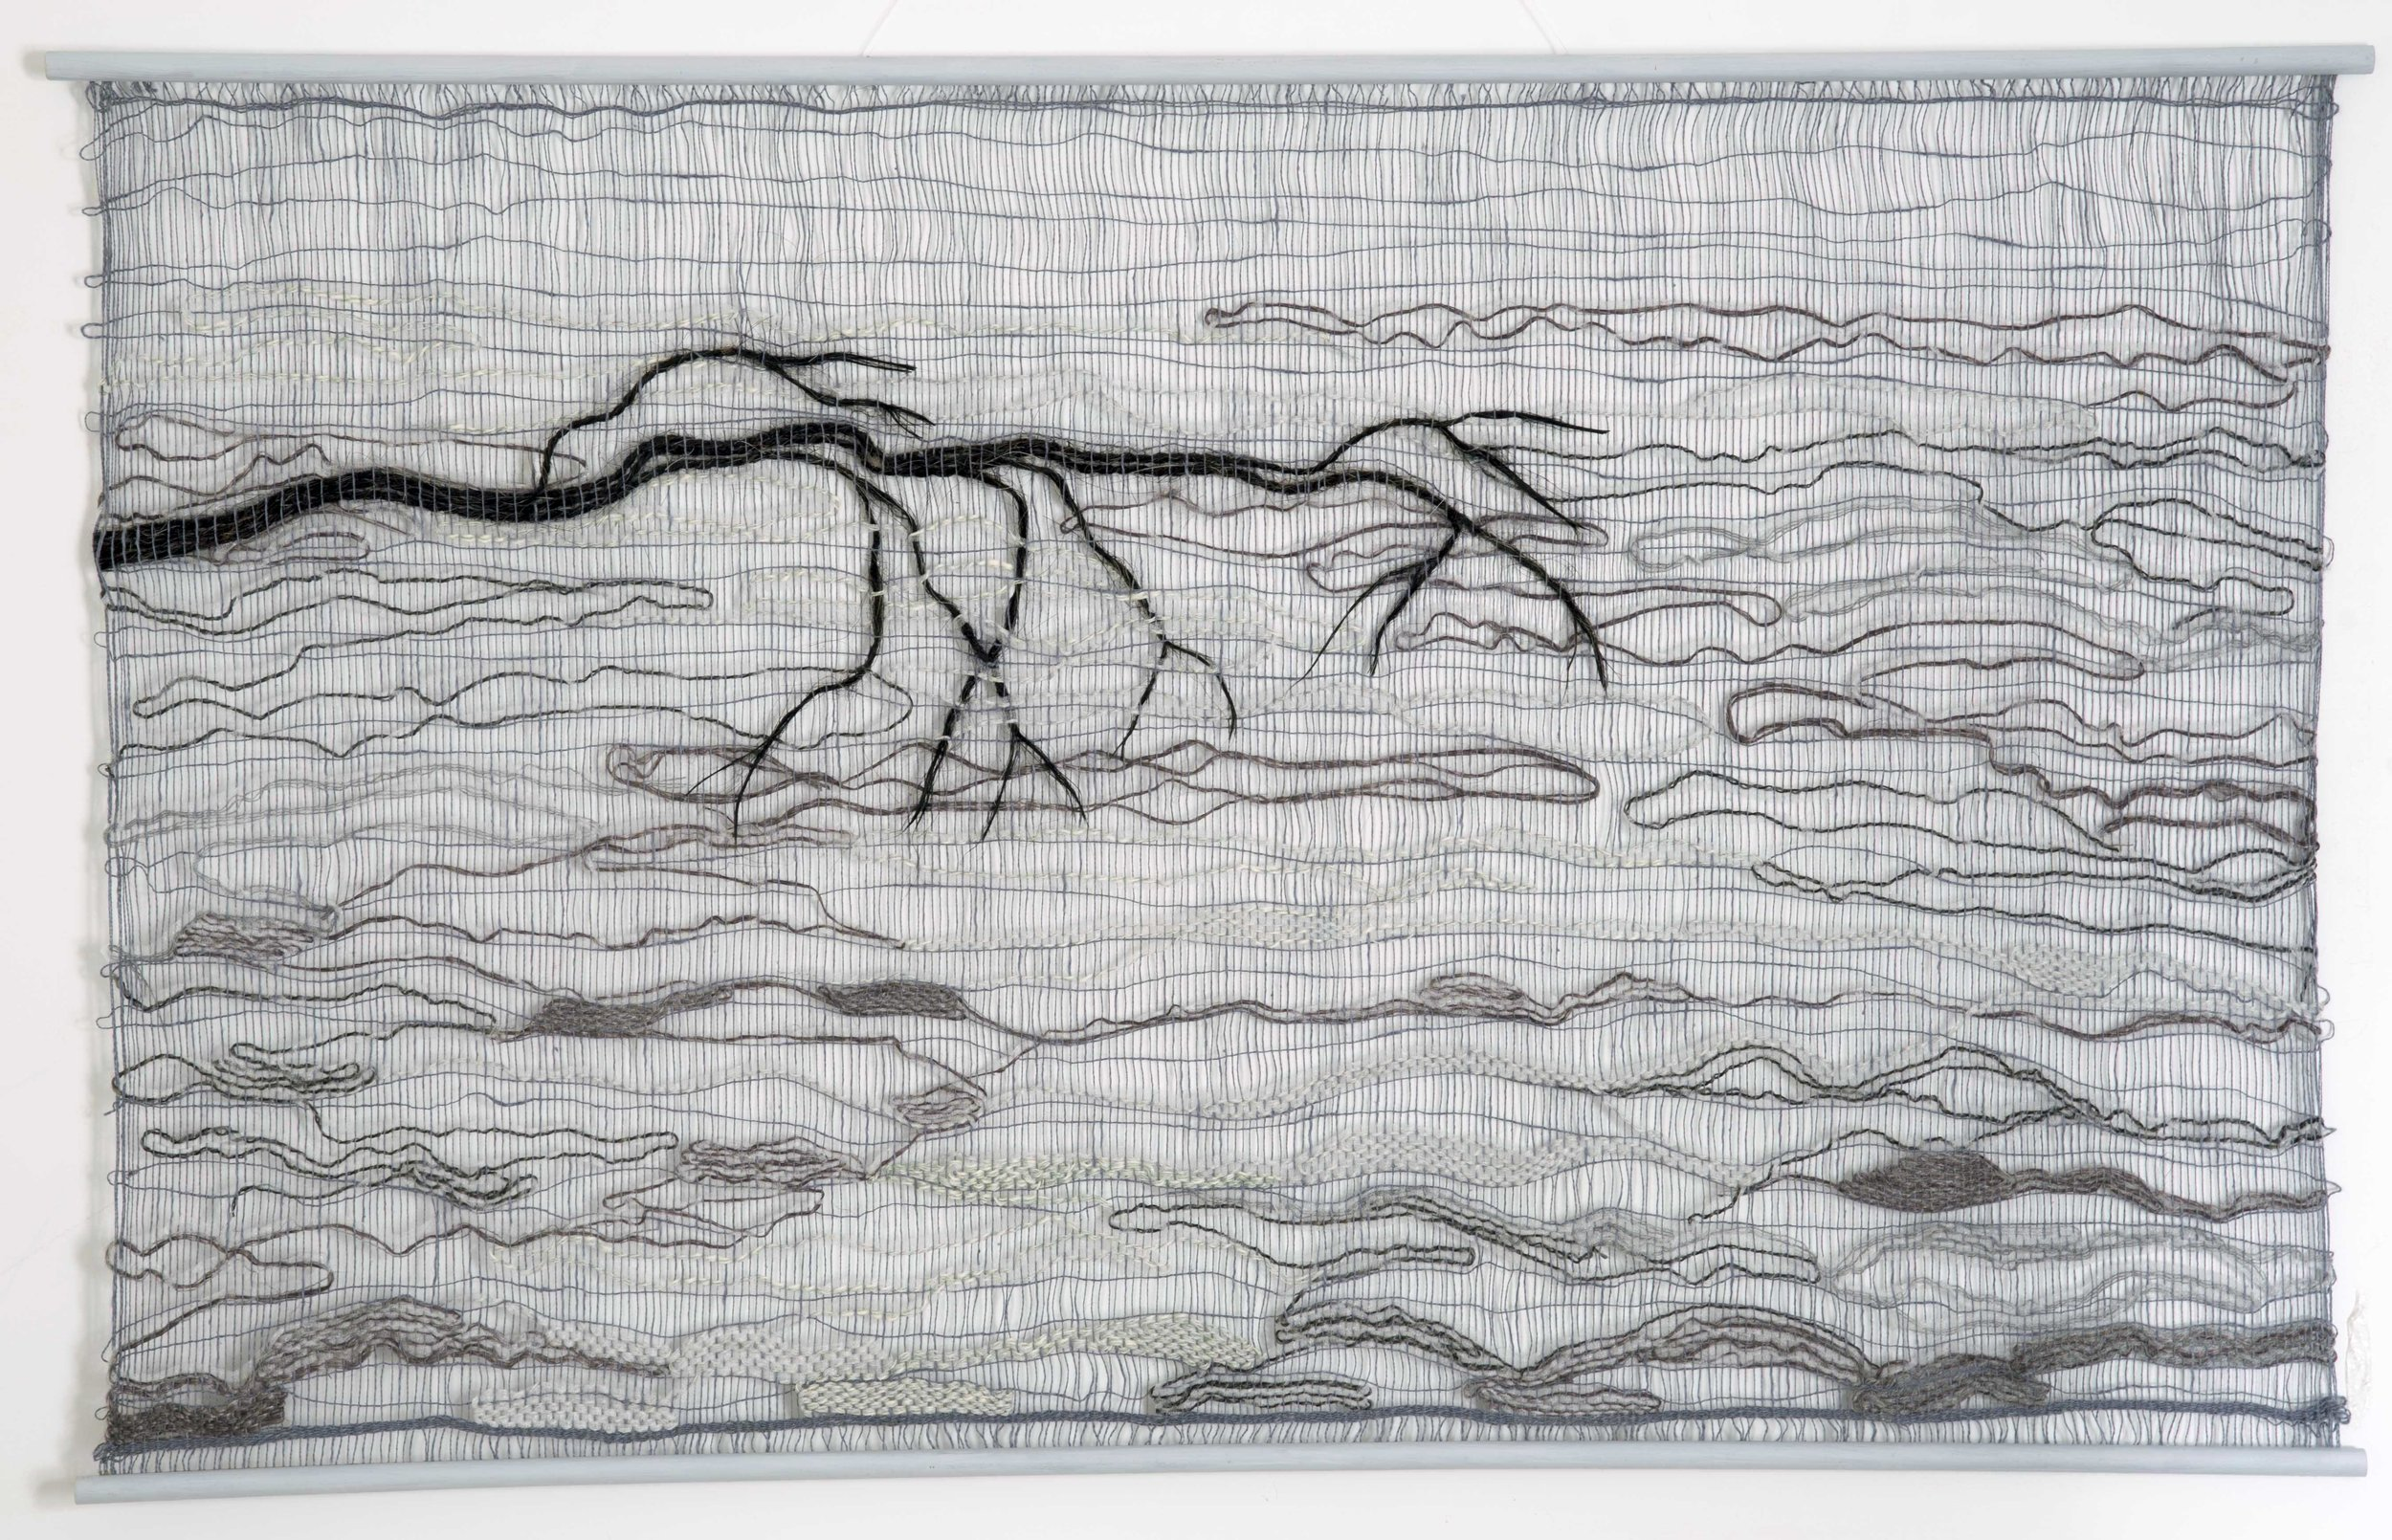 Pells Fog  by artist Jackie Bennett. created using an open weaving technique, woven in cotton, horse hair and other materials